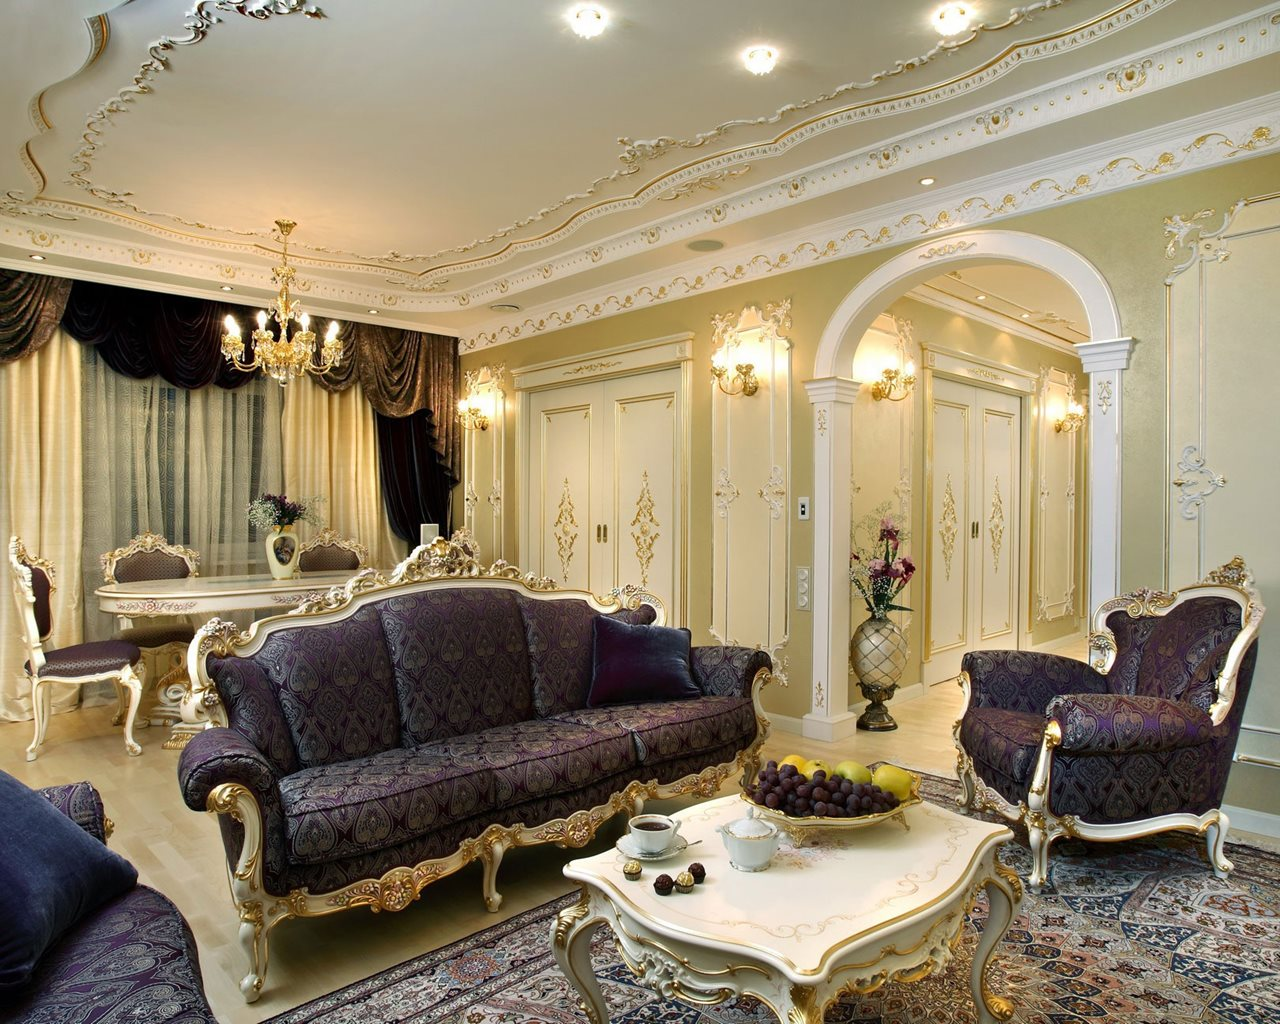 Baroque style interior design ideas for Interior design themes